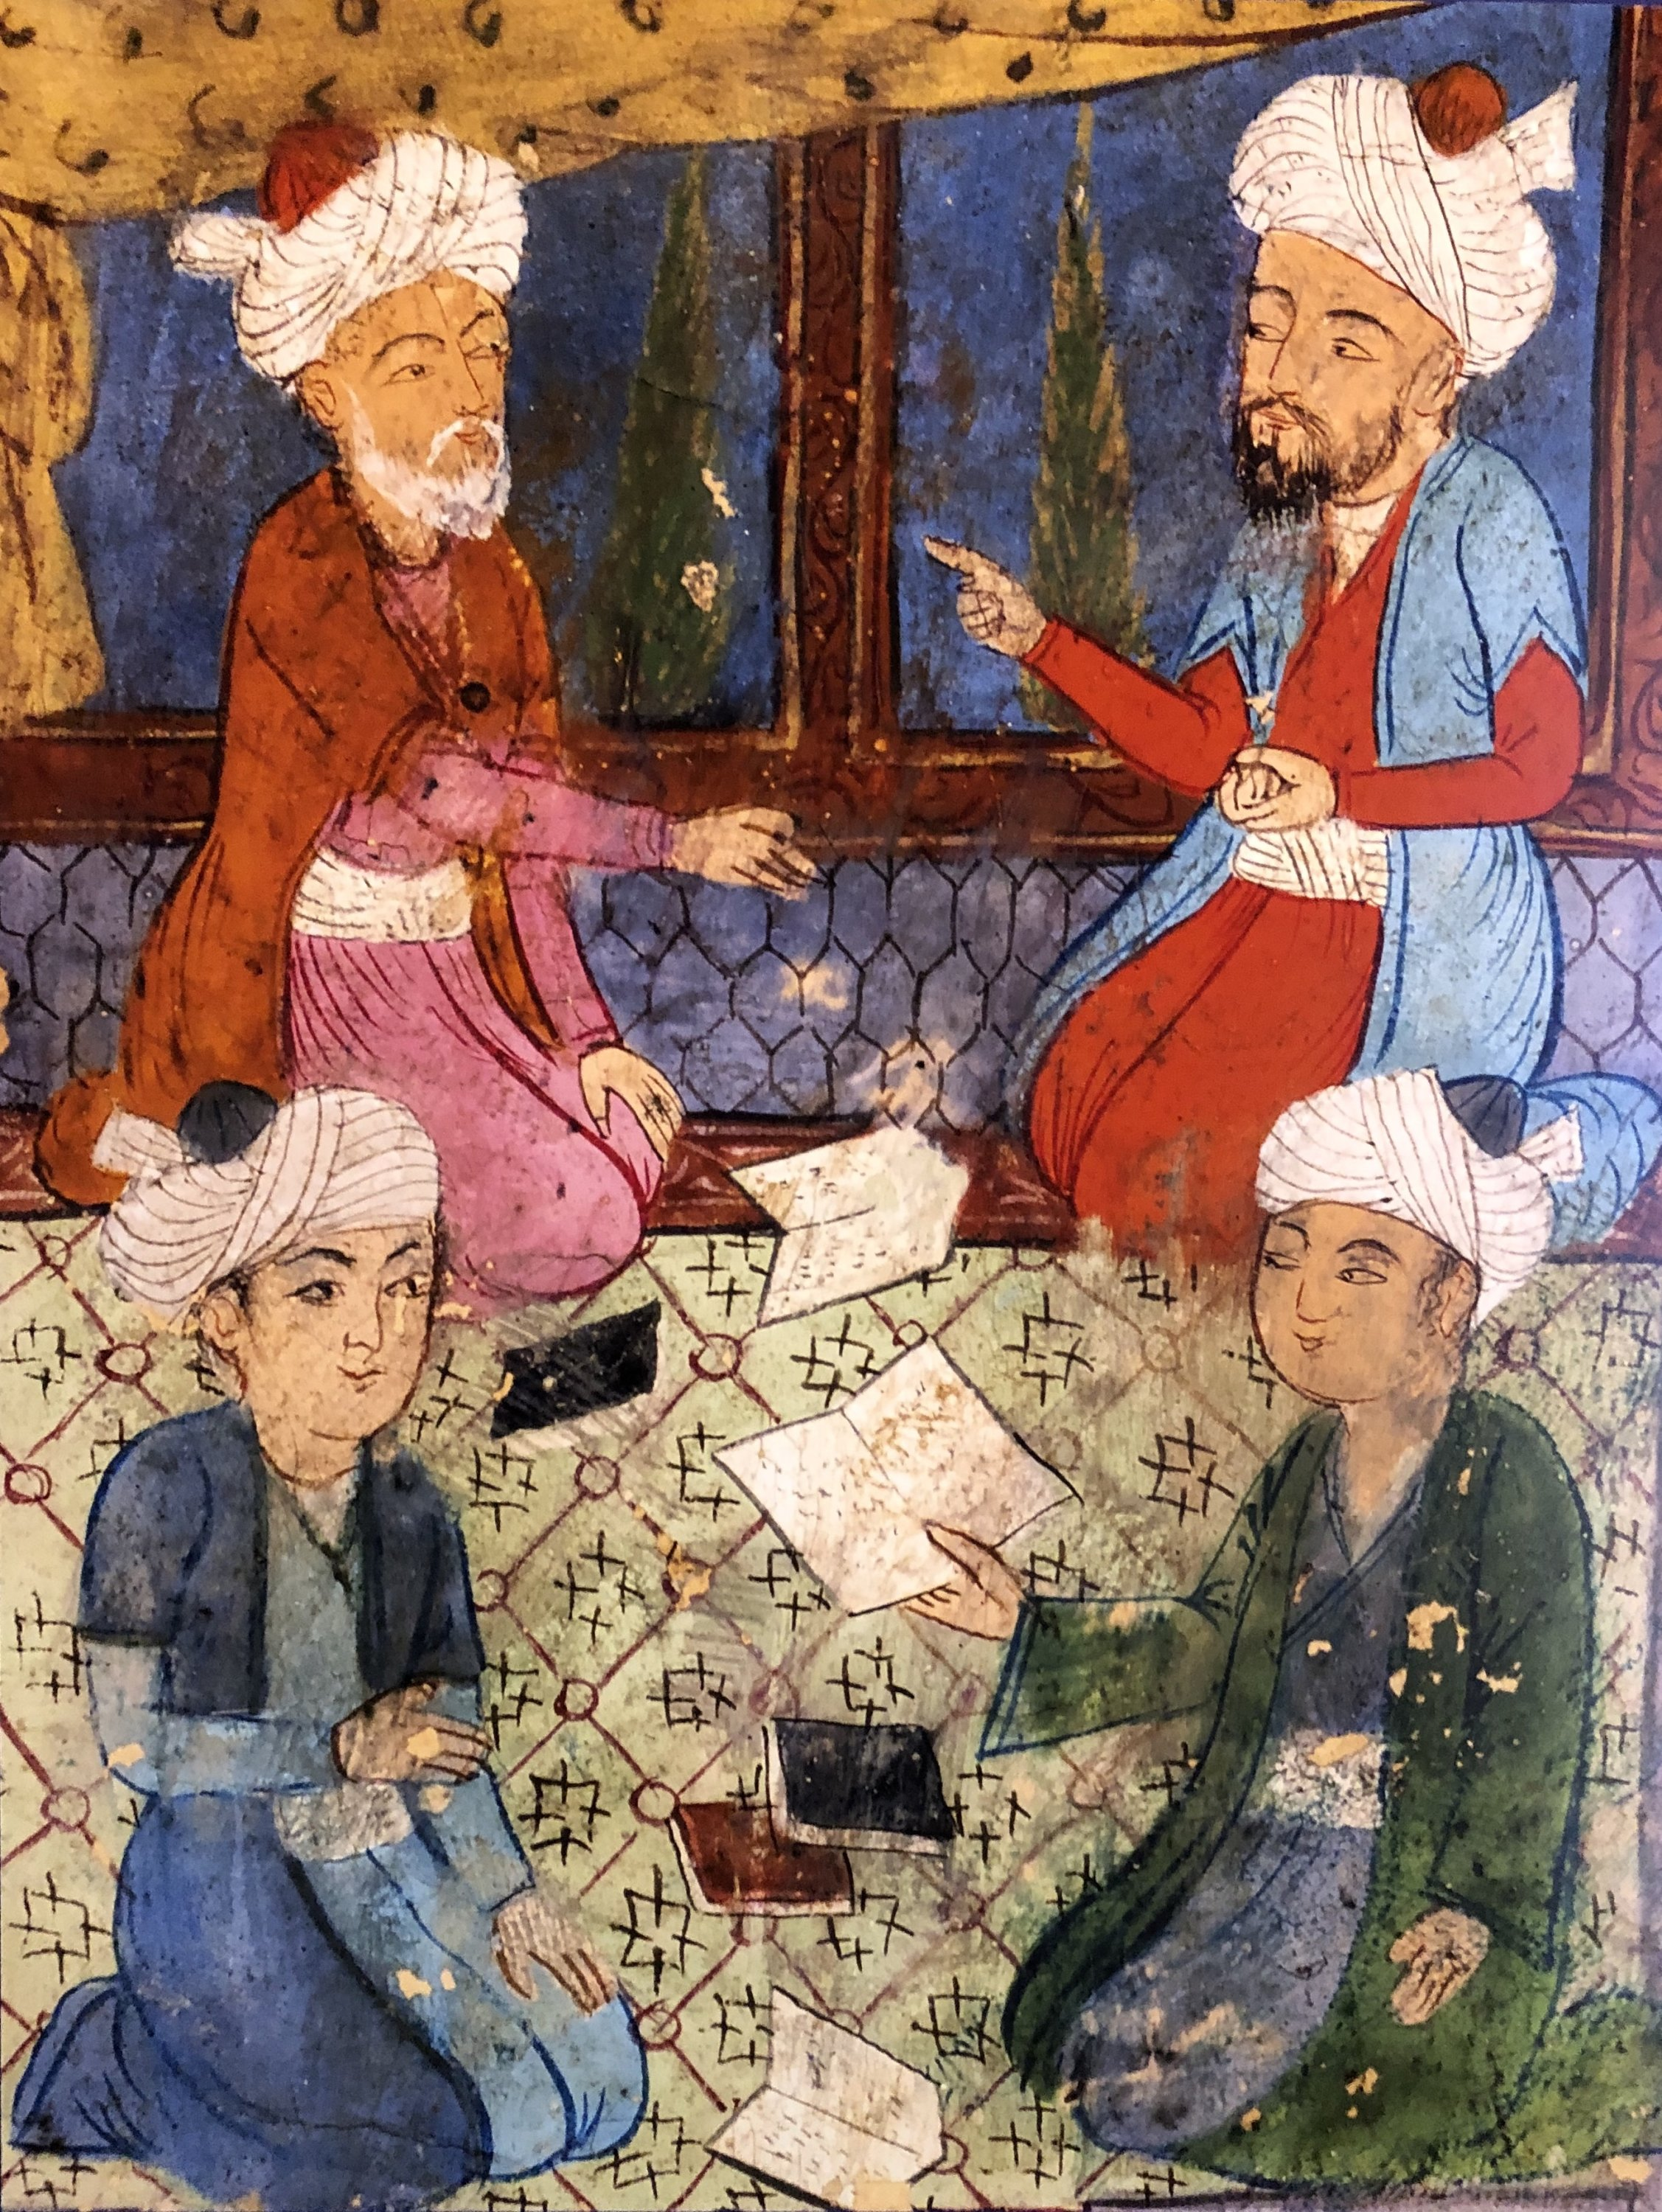 A visual work from the Diwan of Azeri poet Nimetullah Kişveri, 15th-16th century, from Istanbul Research Institute archive. (Photo by Matt Hanson)